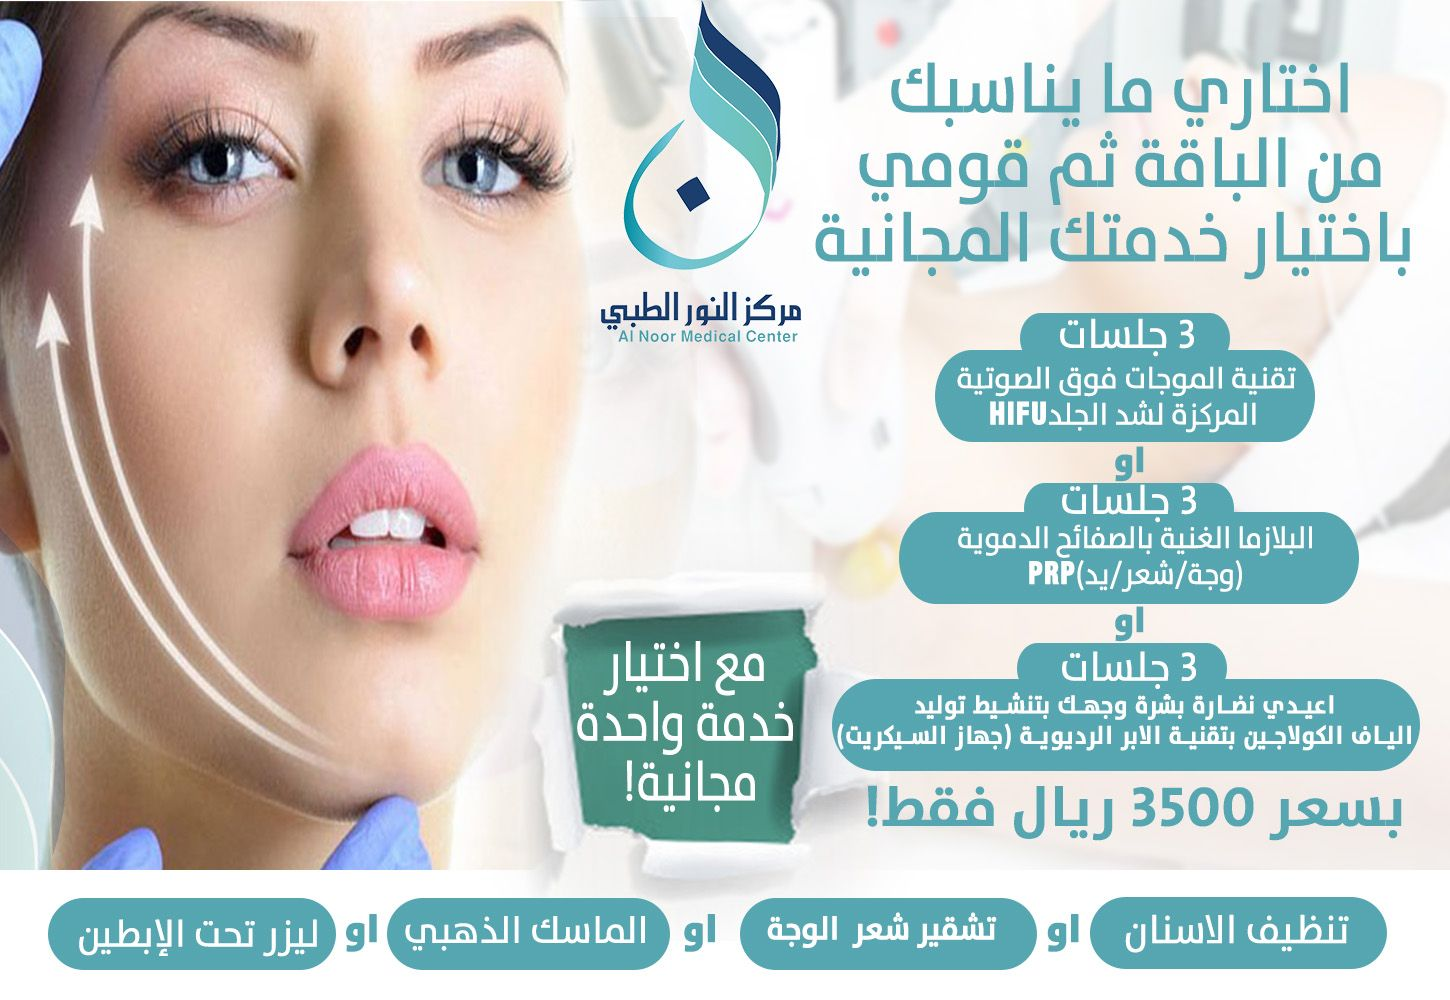 Pin By Info On Alnoor Medical Center Qatar Medical Center Medical Center